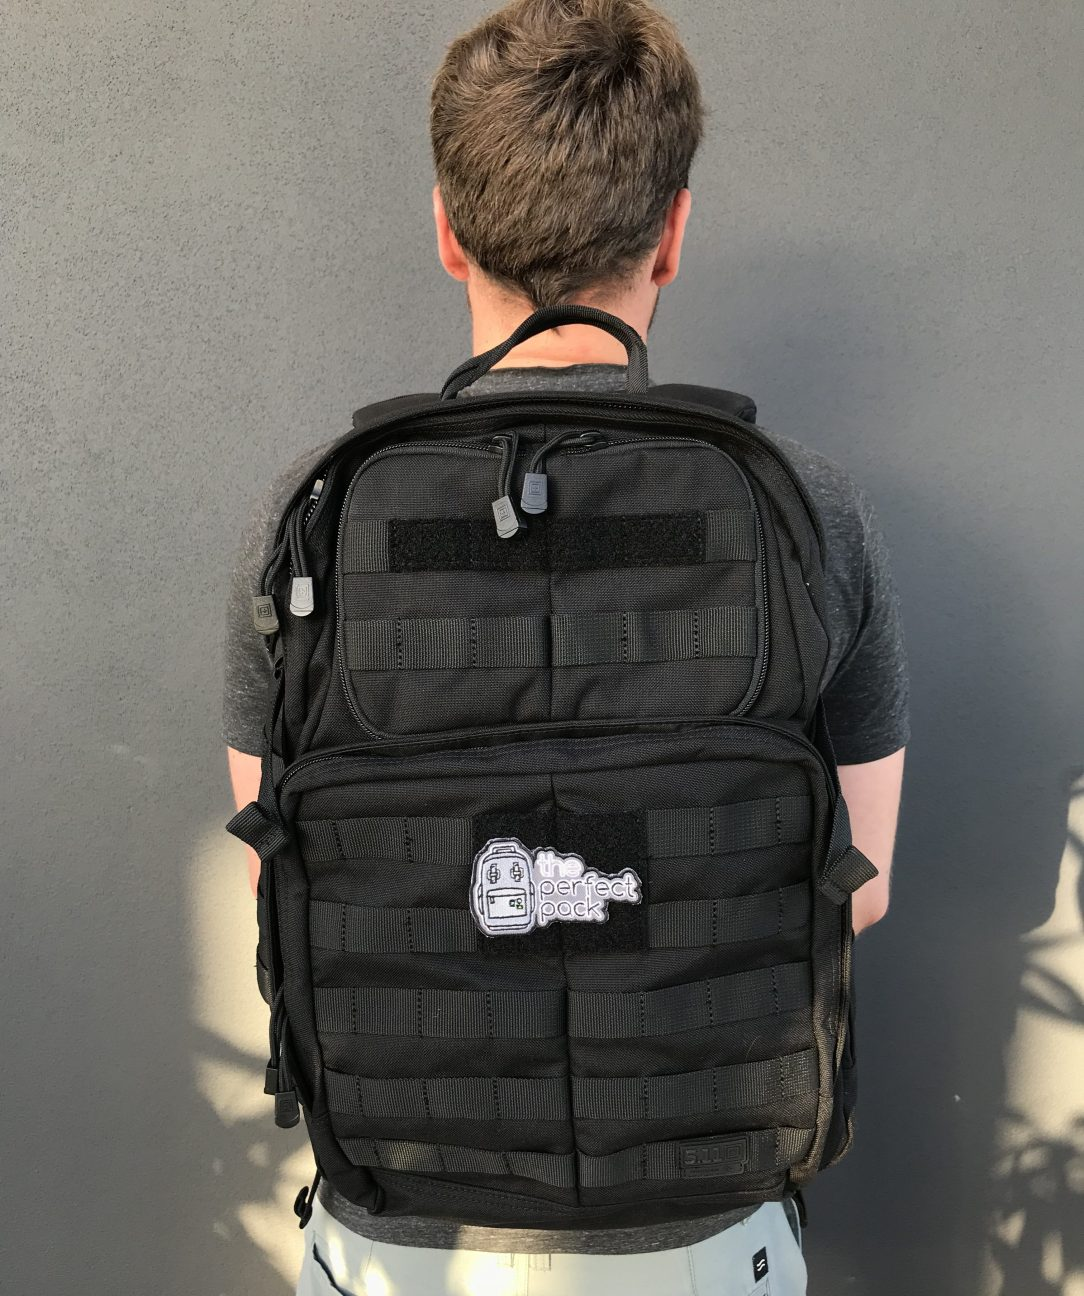 5.11 Rush 24 backpack review on body